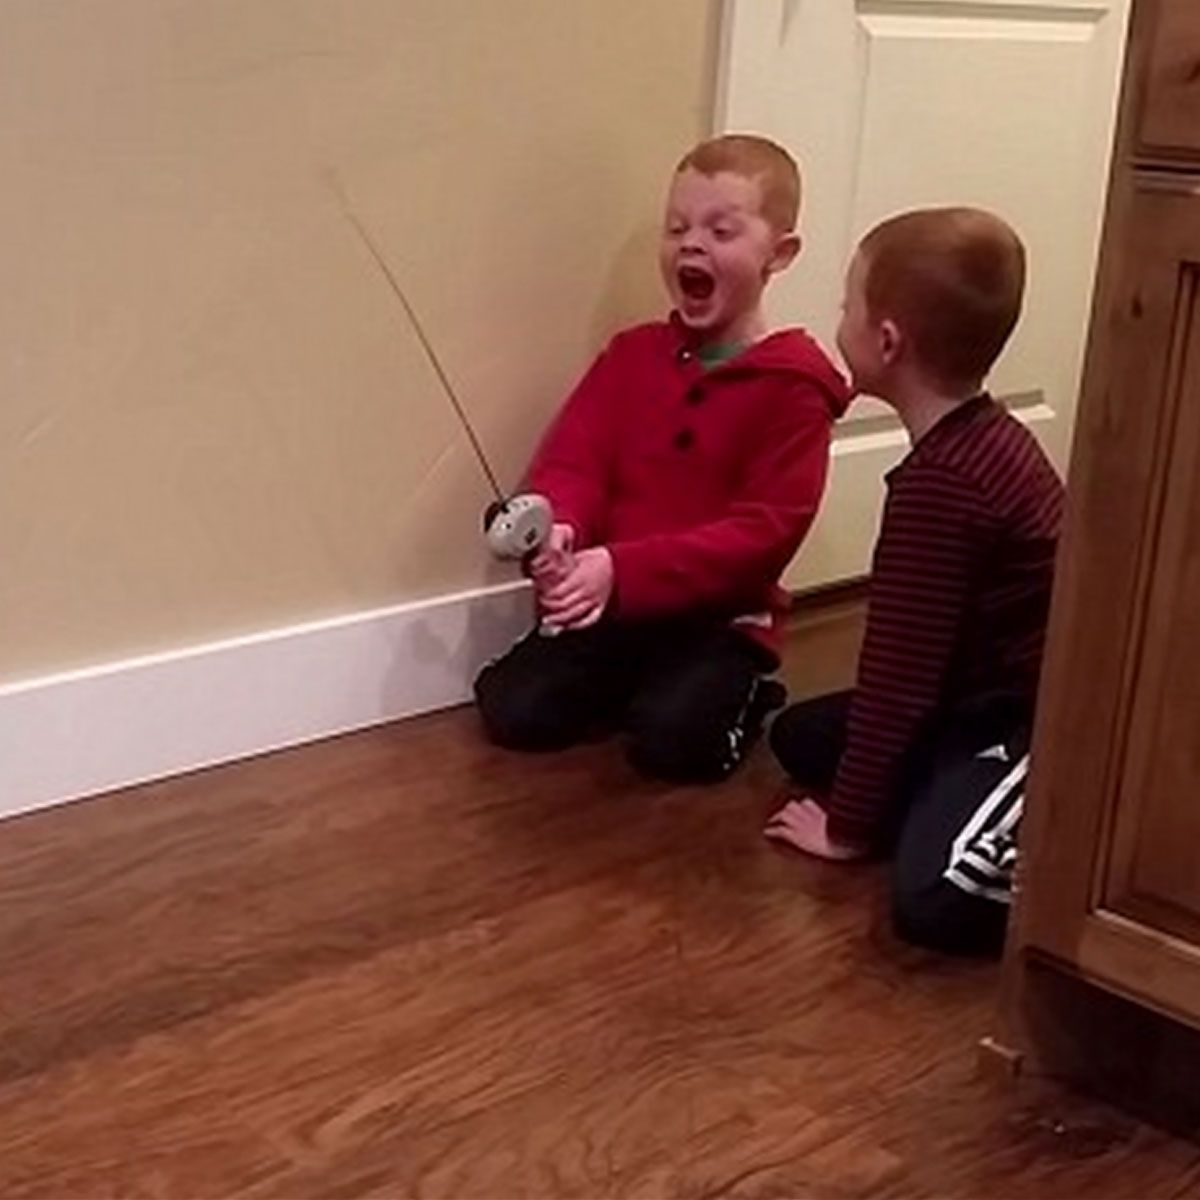 By gum boy uses his remote control car to pull out his